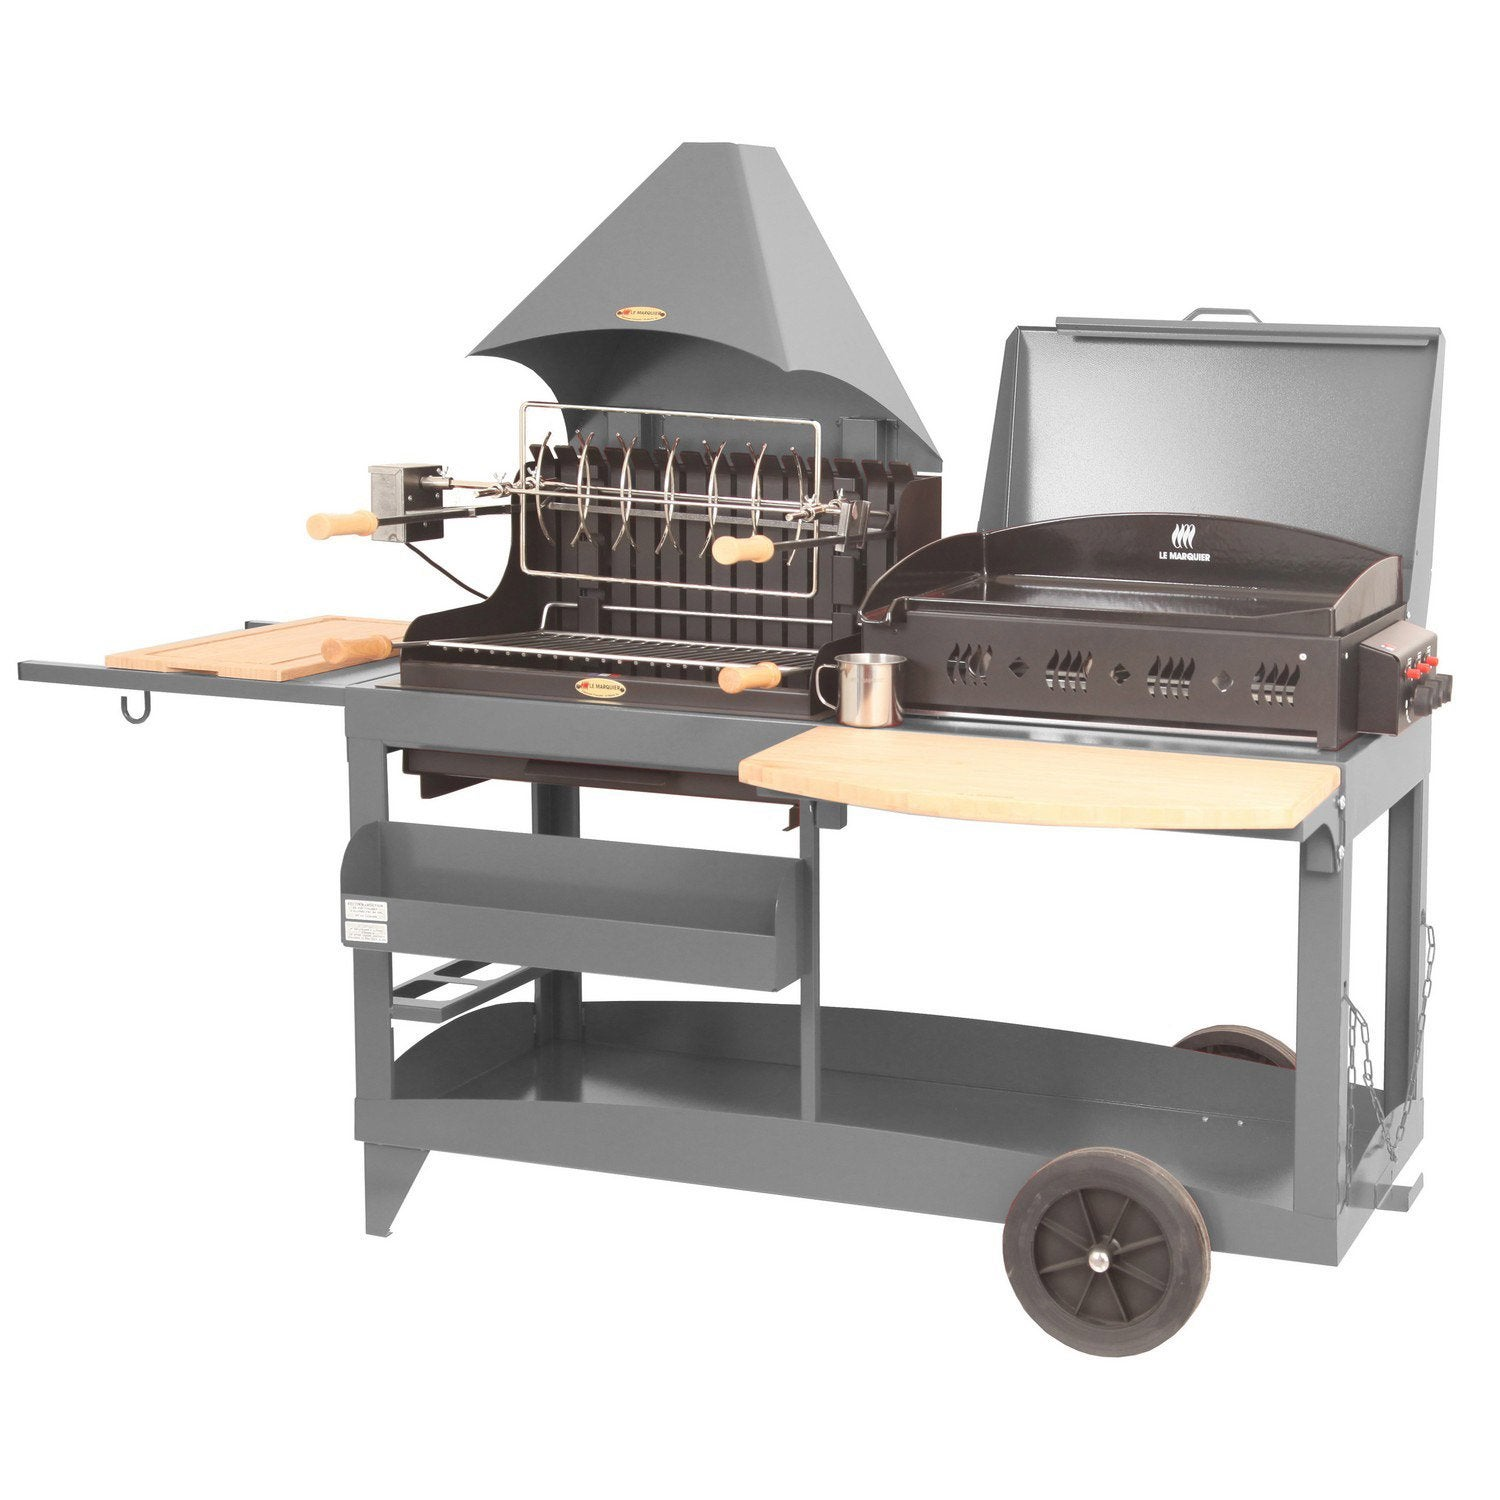 Barbecue vertical leroy merlin - Leroy merlin jardin vertical besancon ...